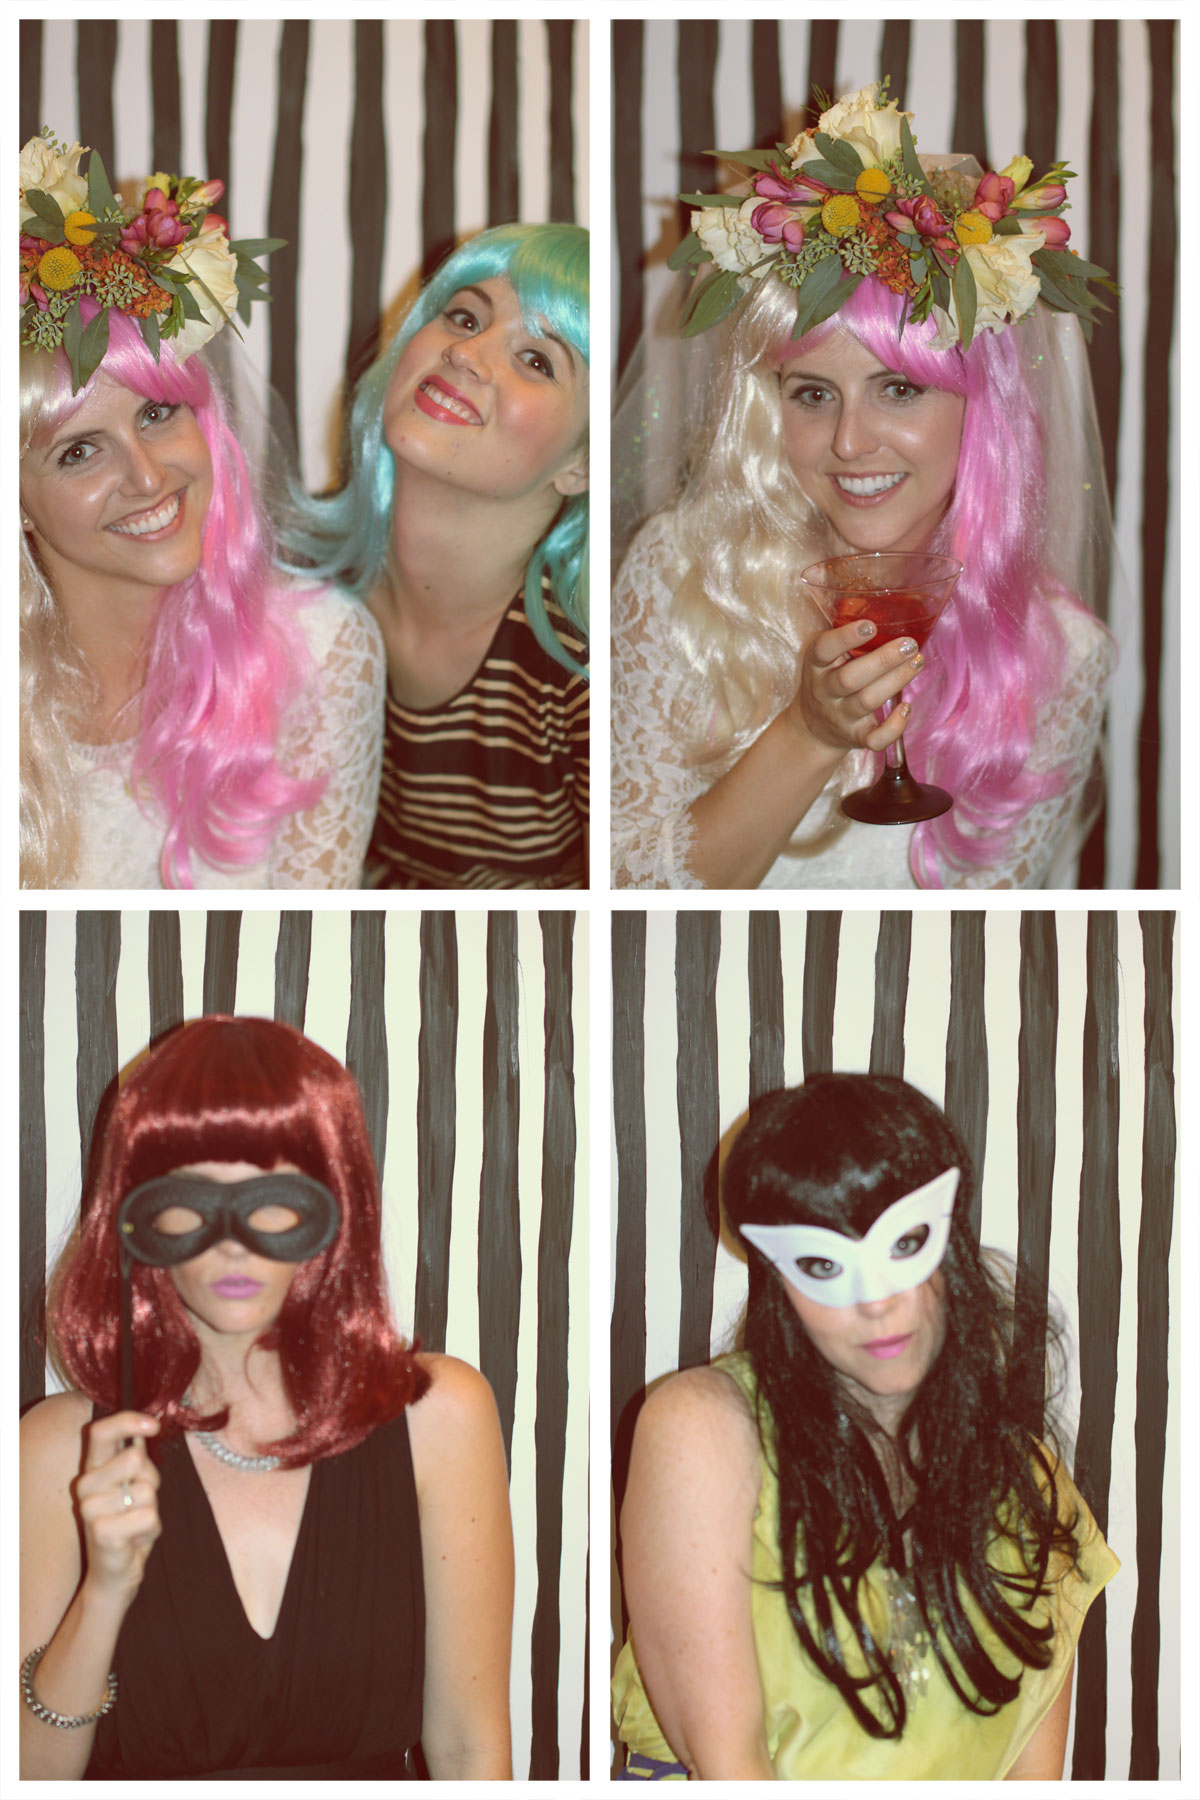 Here is a highlight from the photobooth we set up at the party!  The bride is sportin' the pink wig and flower crown!  Everyone looked amazing and had so much fun in their wigs and masks!  Can't wait for the wedding this weekend!